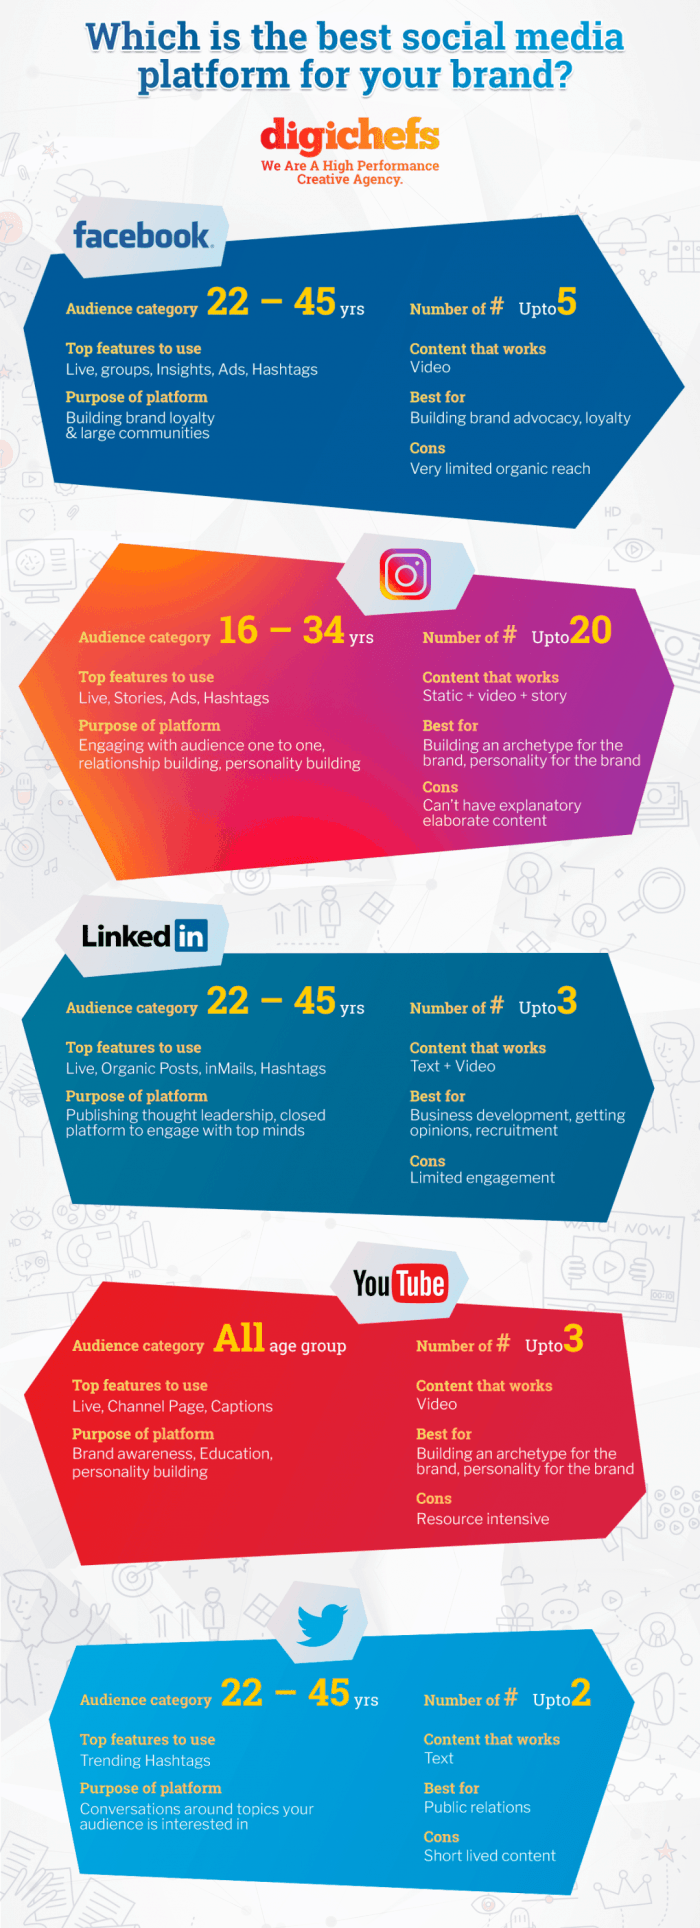 Stats provided in this infographic show details of social media effectiveness.